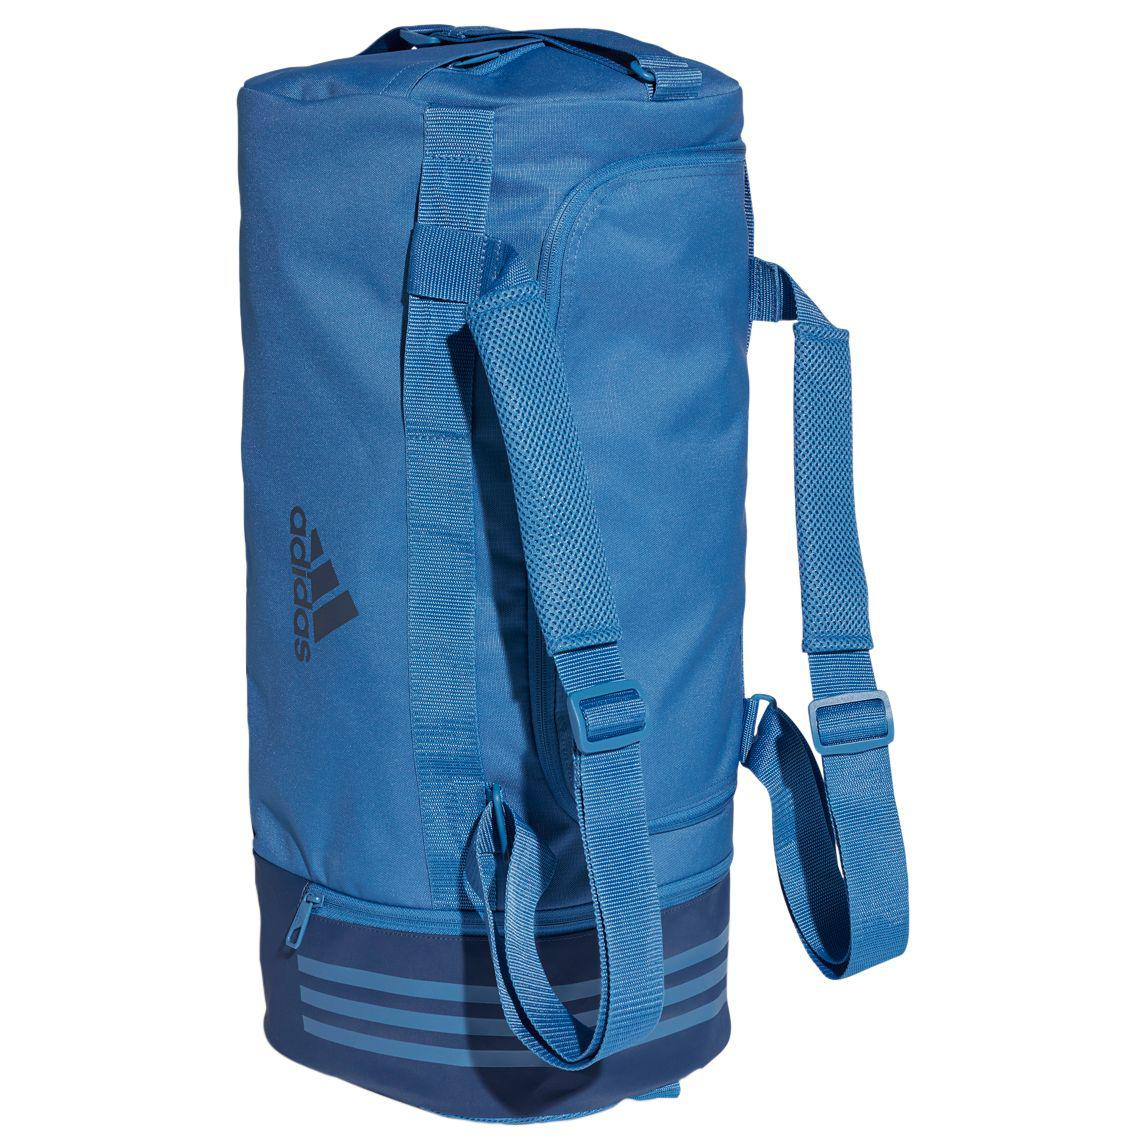 87f96c61a593 adidas Convertible 3-stripes Duffle Bag in Blue for Men - Lyst